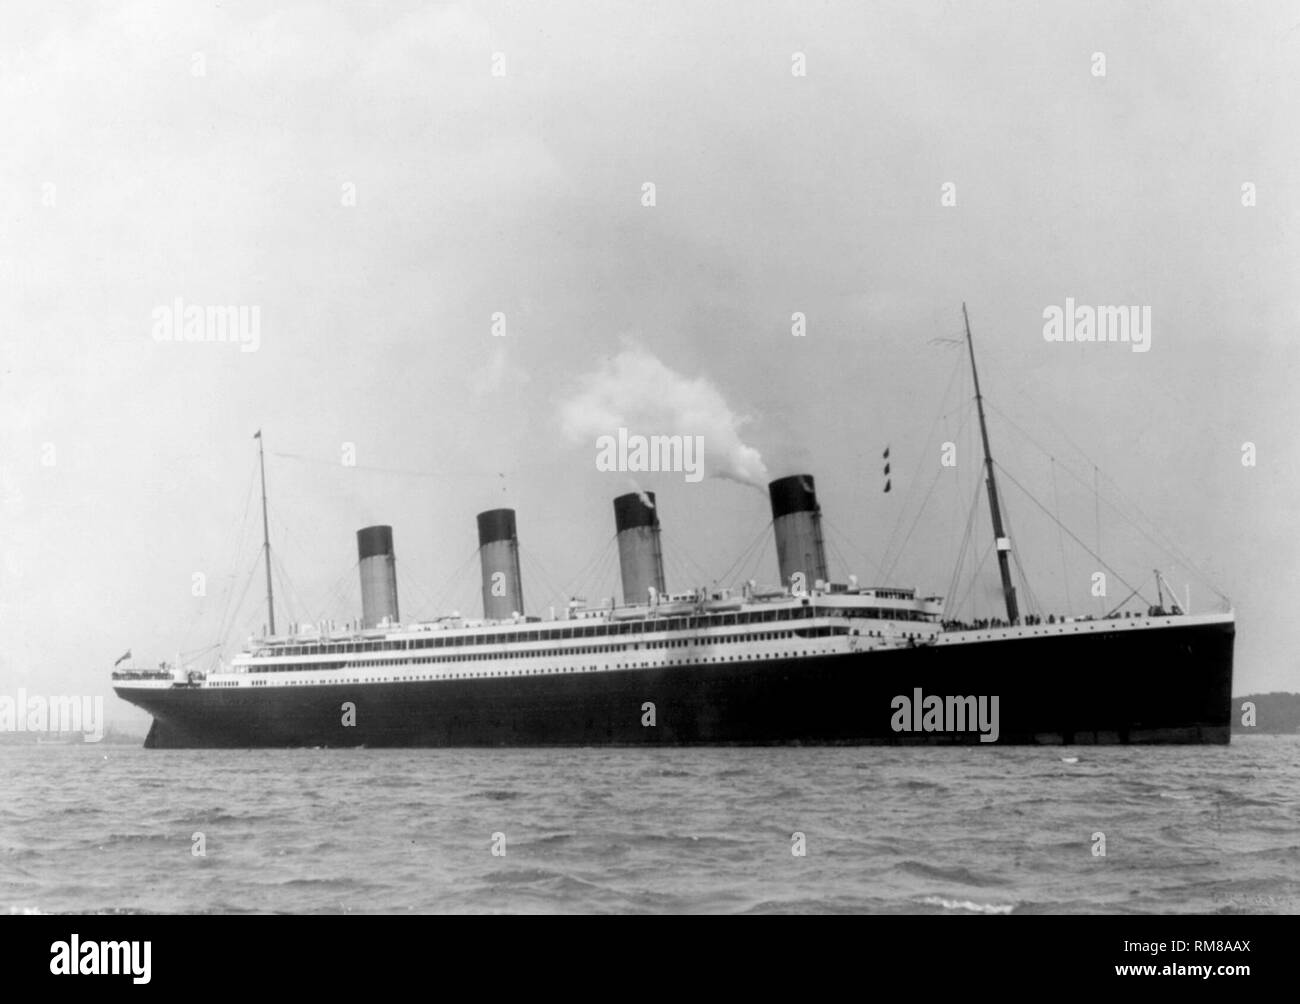 maiden voyage of the RMS olympic passenger ship, sister ship to the Titanic in 1911 showing the smaller number of lifeboats than she would carry after the titanic disaster - Stock Image